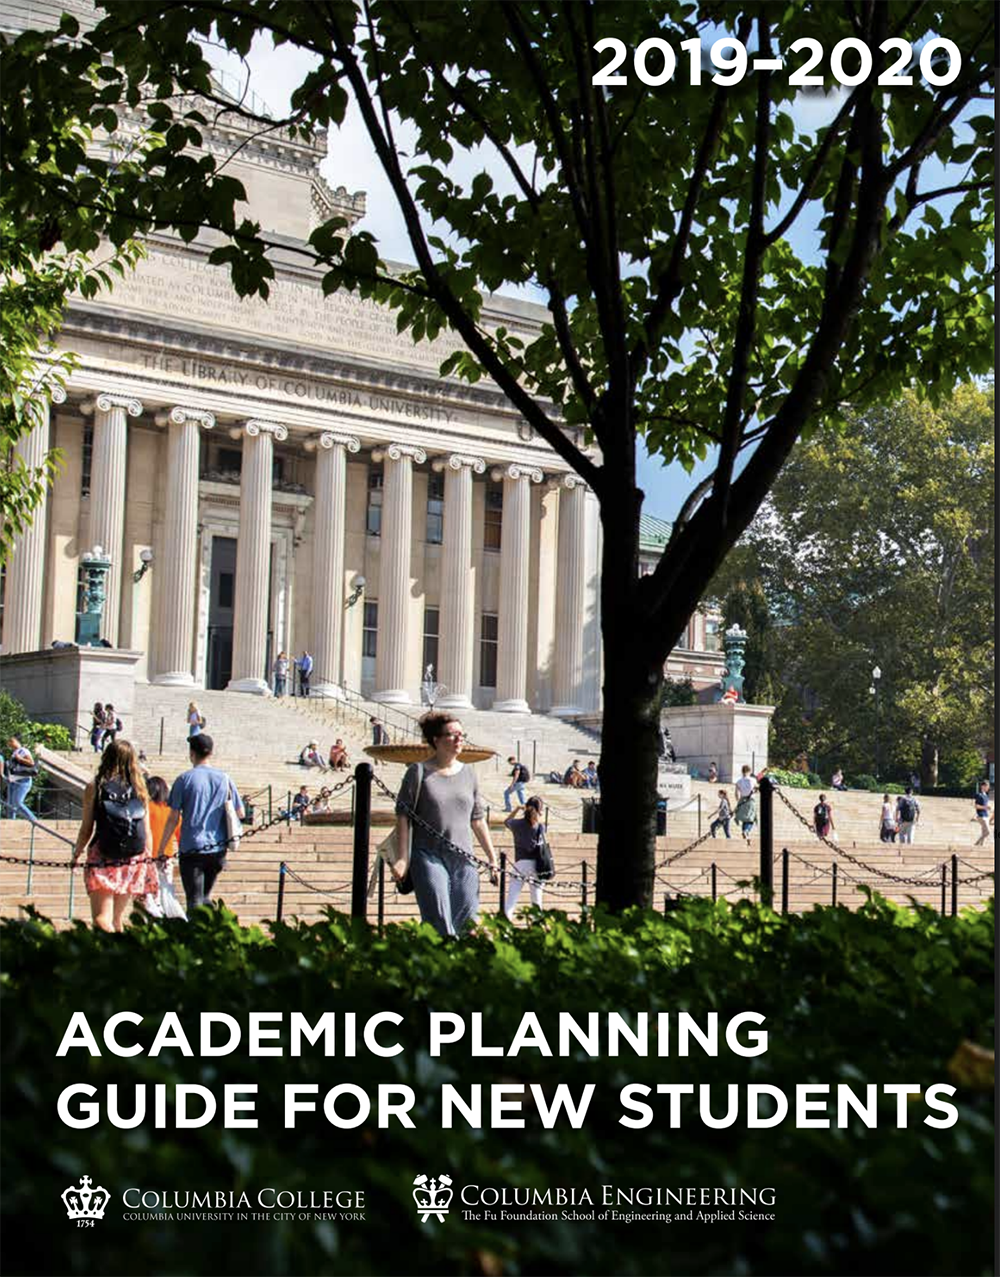 Academic Planning Guide 2019-2020